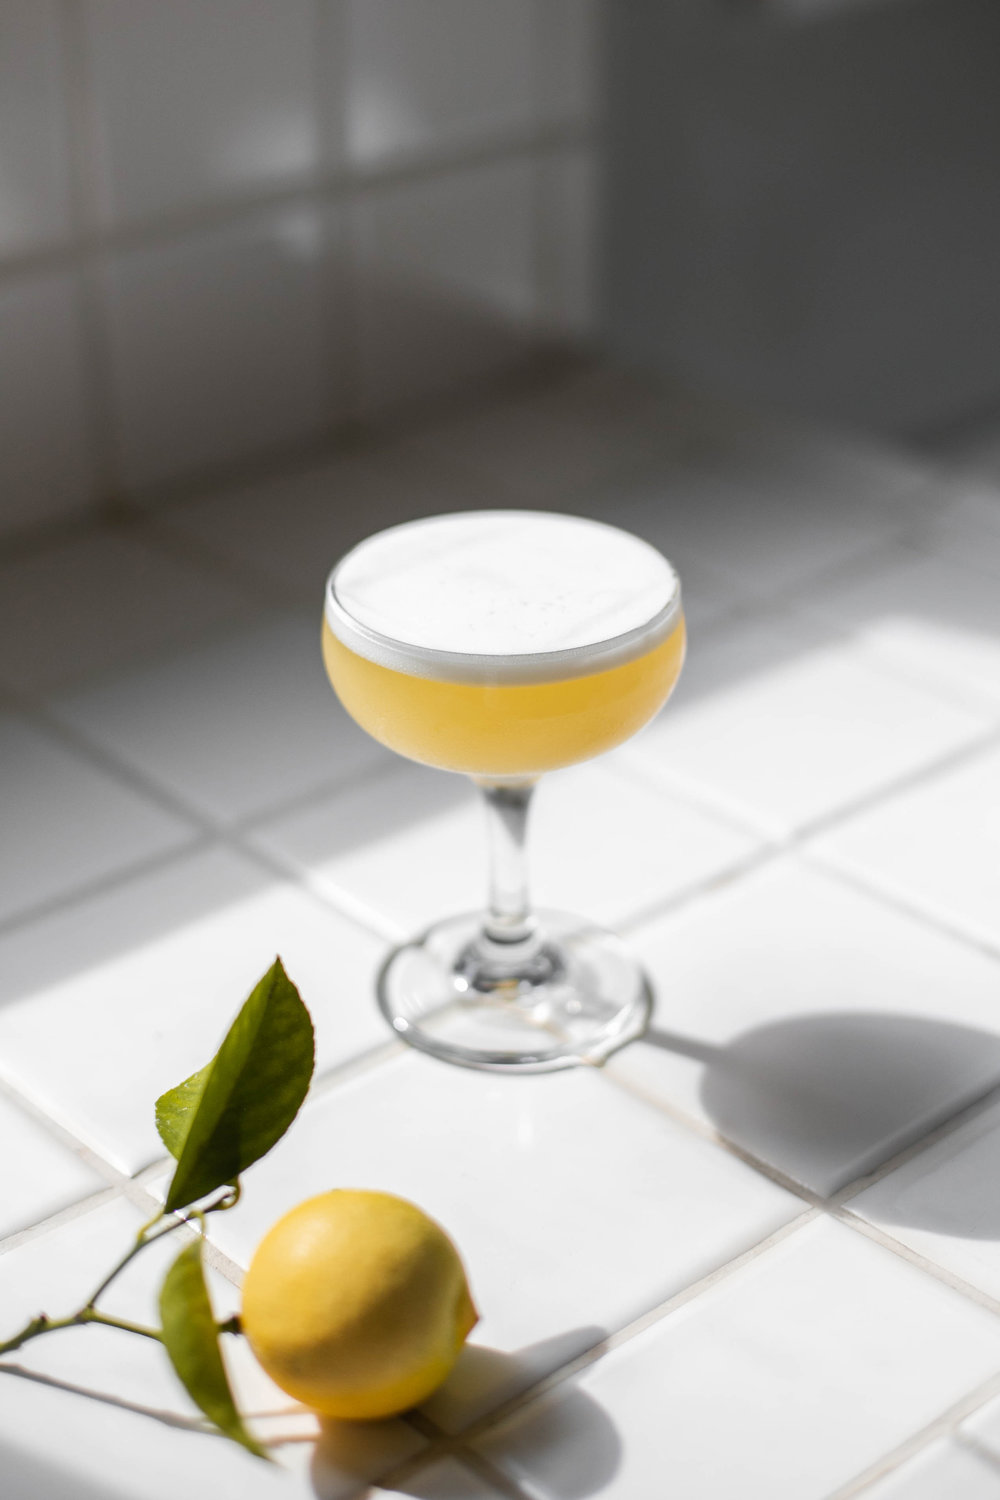 Above Tree Line - 1oz Ransom Old Tom1/2oz Chareau1/2oz Gran Classico1 Lemon1/2oz Rosemary Syrup1 Dash Angostura1 Egg WhiteDry shake then shake with ice, and strain into coupe. Express lemon peel over top and discard.Rosemary Syrup:2 Cups Sugar1 Cup Water5 Sprigs RosemaryBring water to simmer over medium heat. Add 5 sprigs rosemary and dissolve sugar. Once dissolved, remove from heat and steep rosemary until cooled to room temp. Strain syrup through a Chinois.